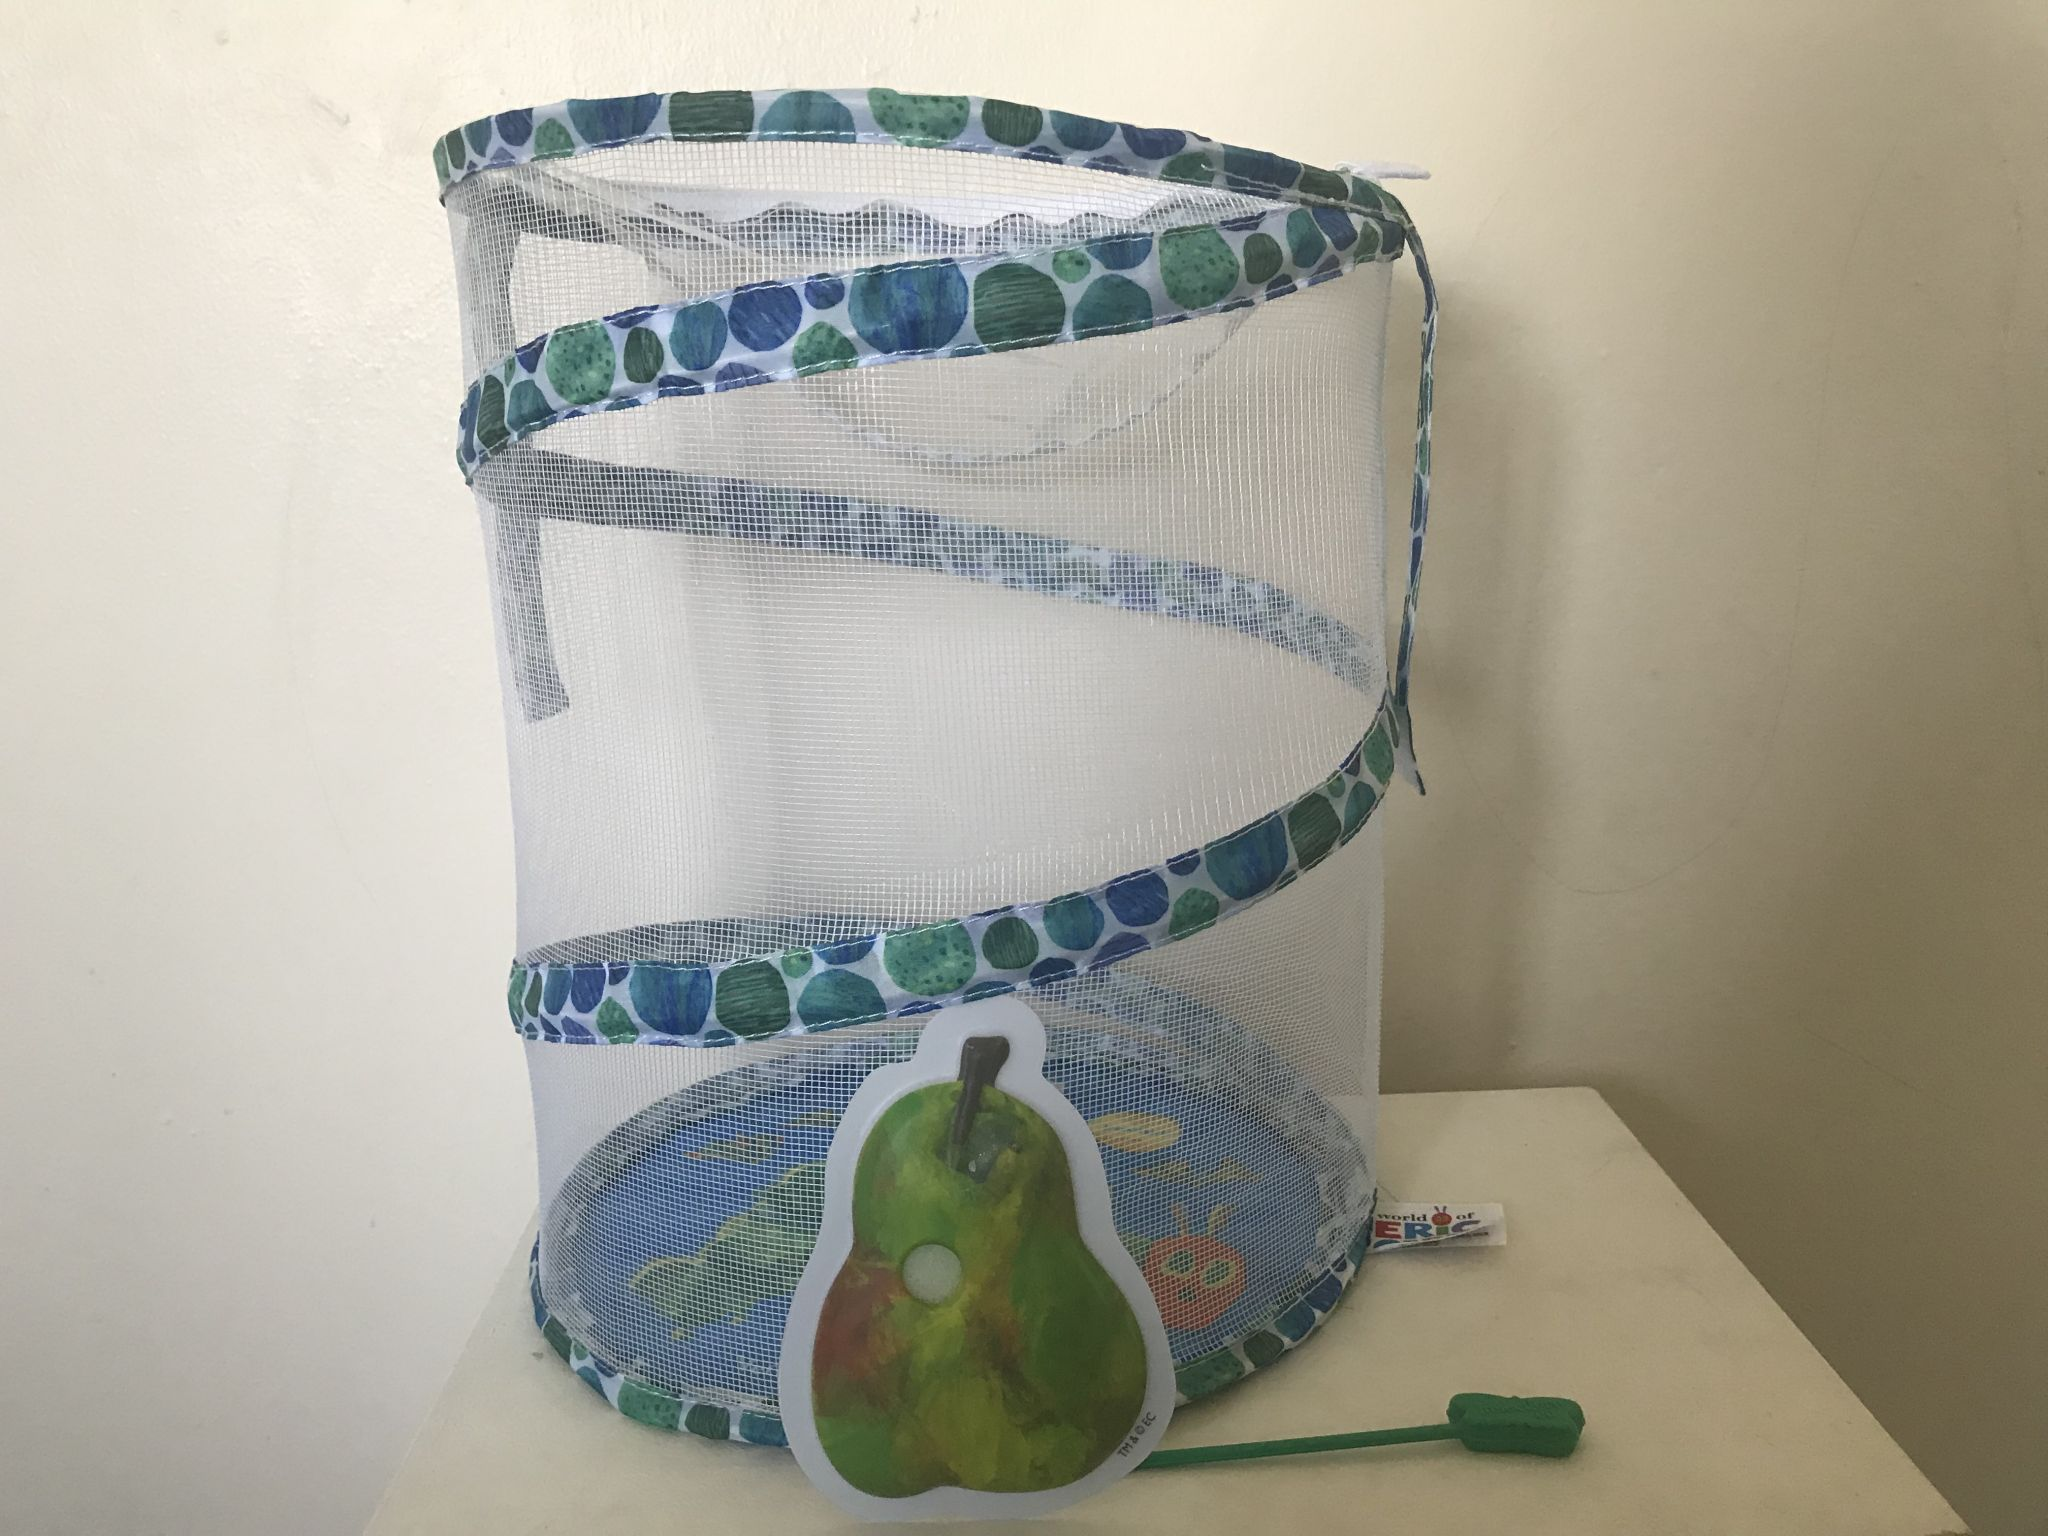 A butterfly net and pear shaped feeder